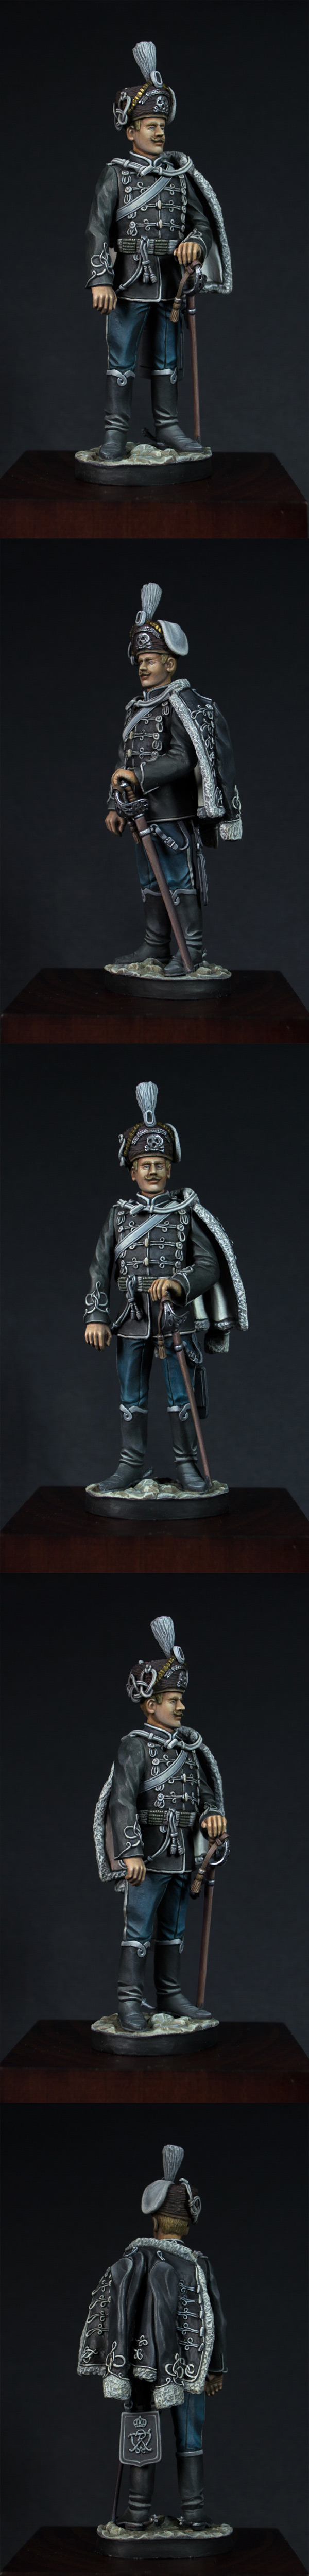 Prussian Leib-Hussar